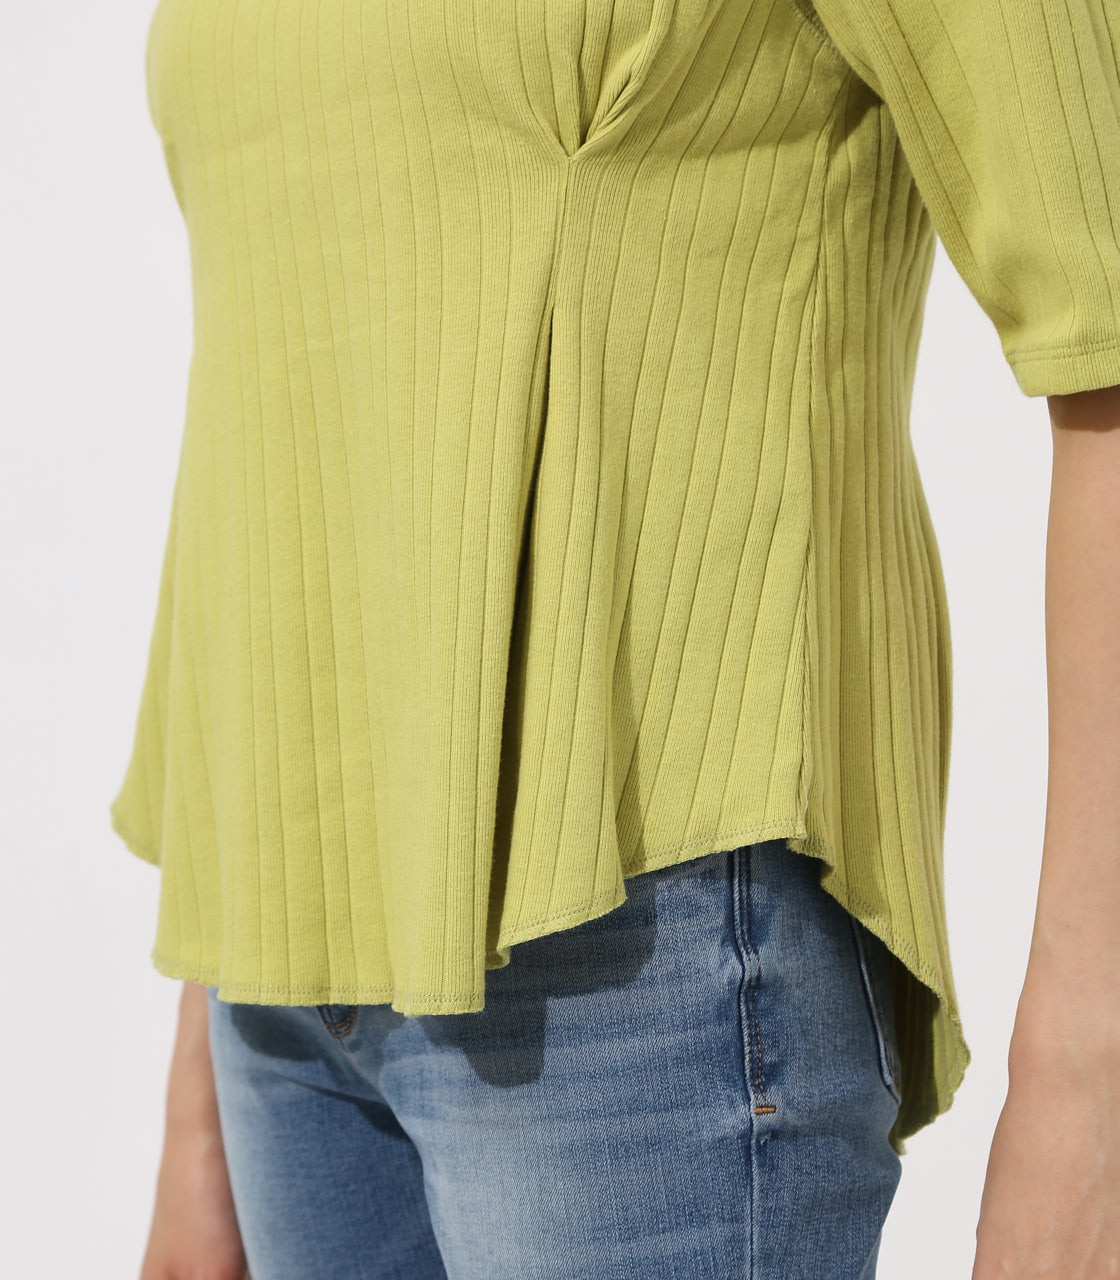 【AZUL BY MOUSSY】WAIST TUCK WIDE RIB TOPS 詳細画像 LIME 9